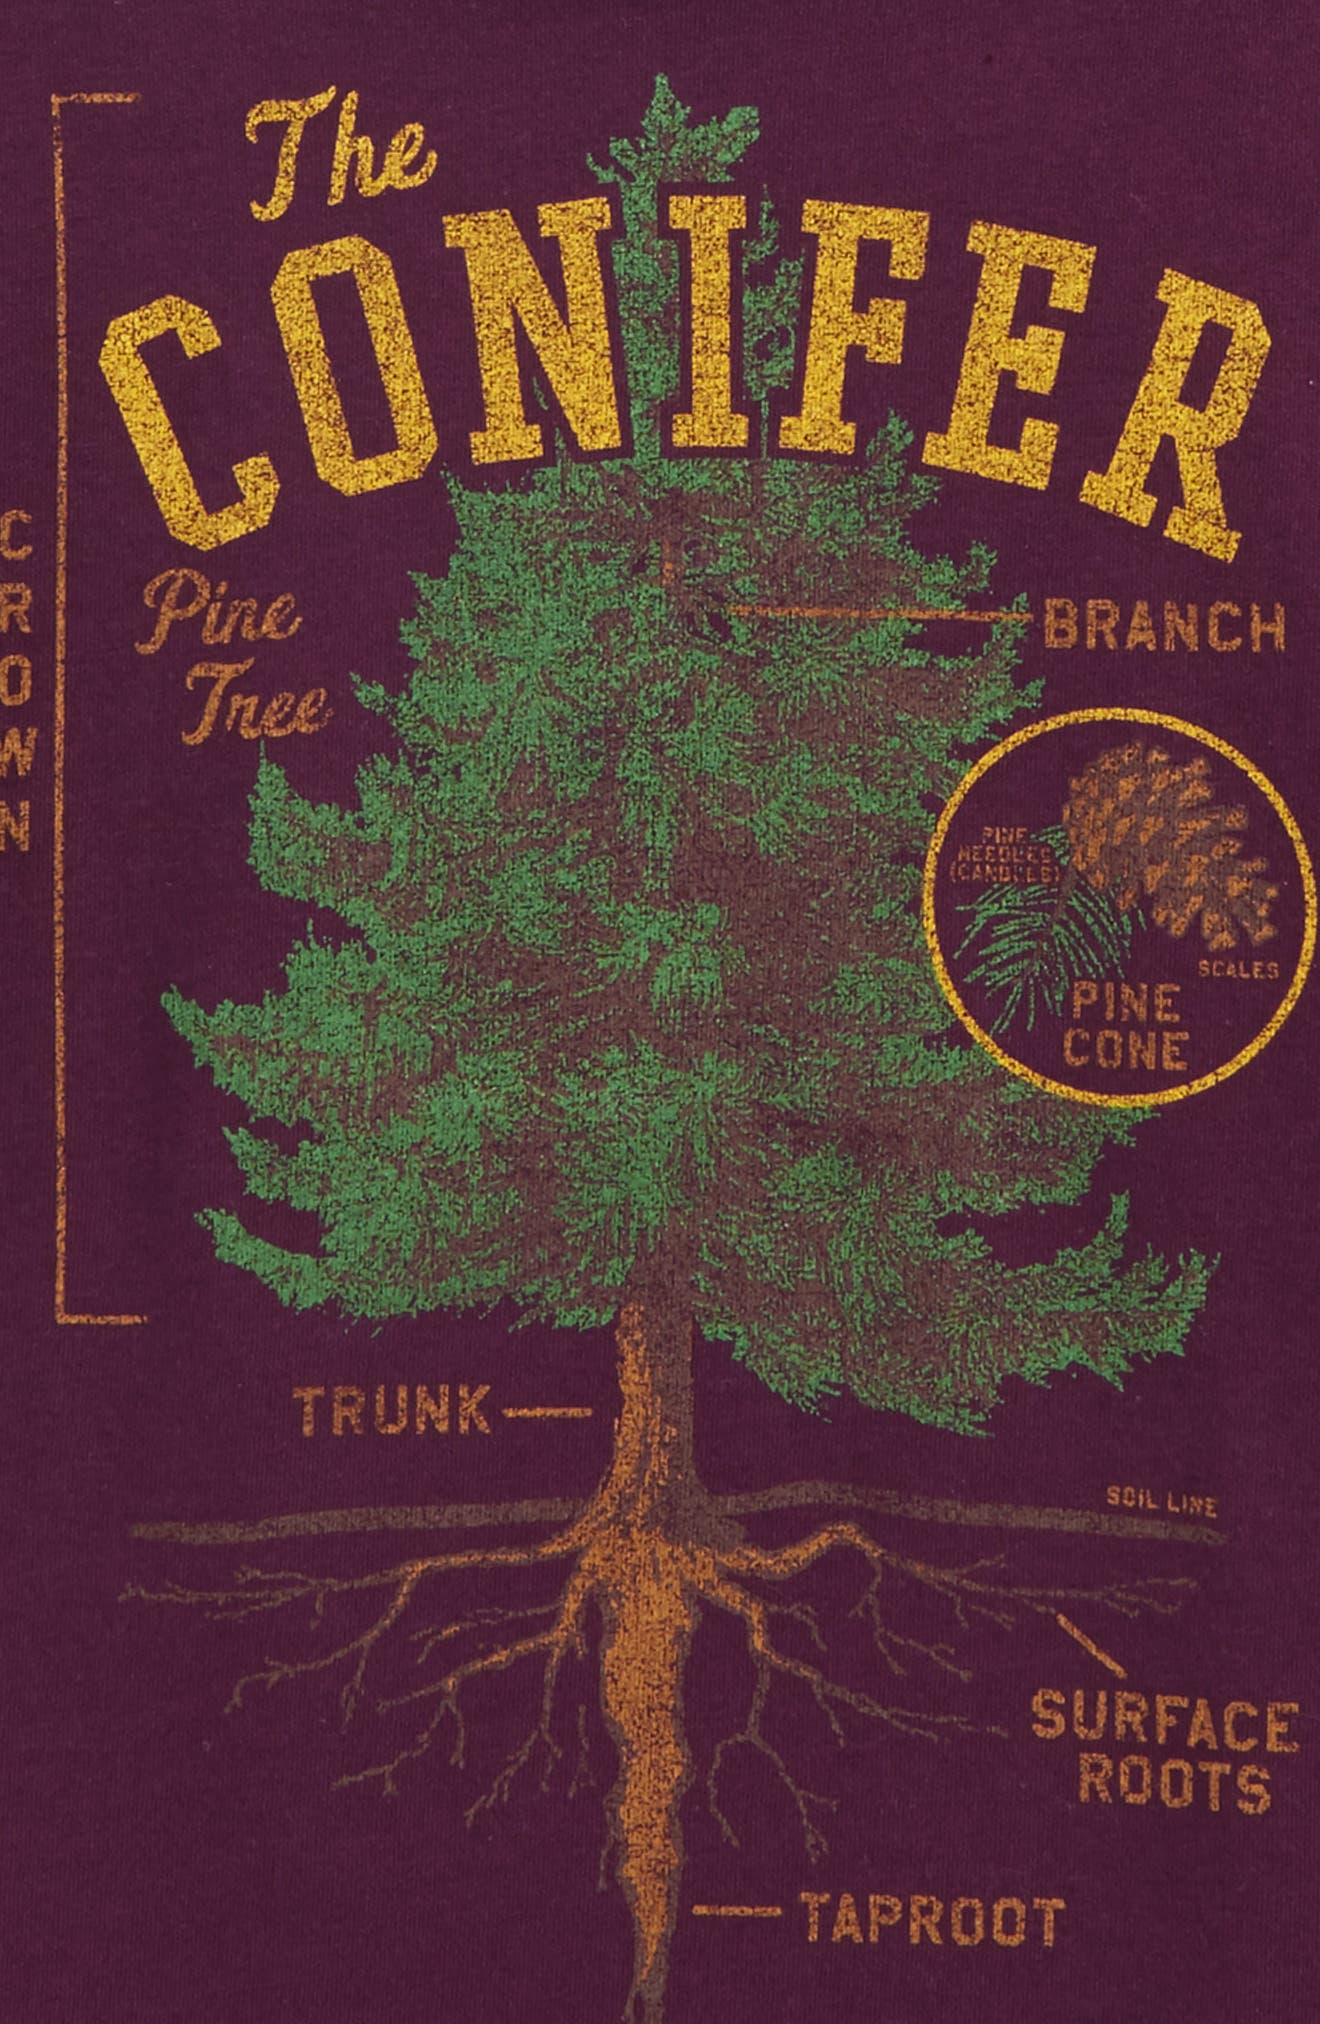 Alternate Image 3  - Peek The Conifer Graphic T-Shirt (Toddler Boys, Little Boys & Big Boys)